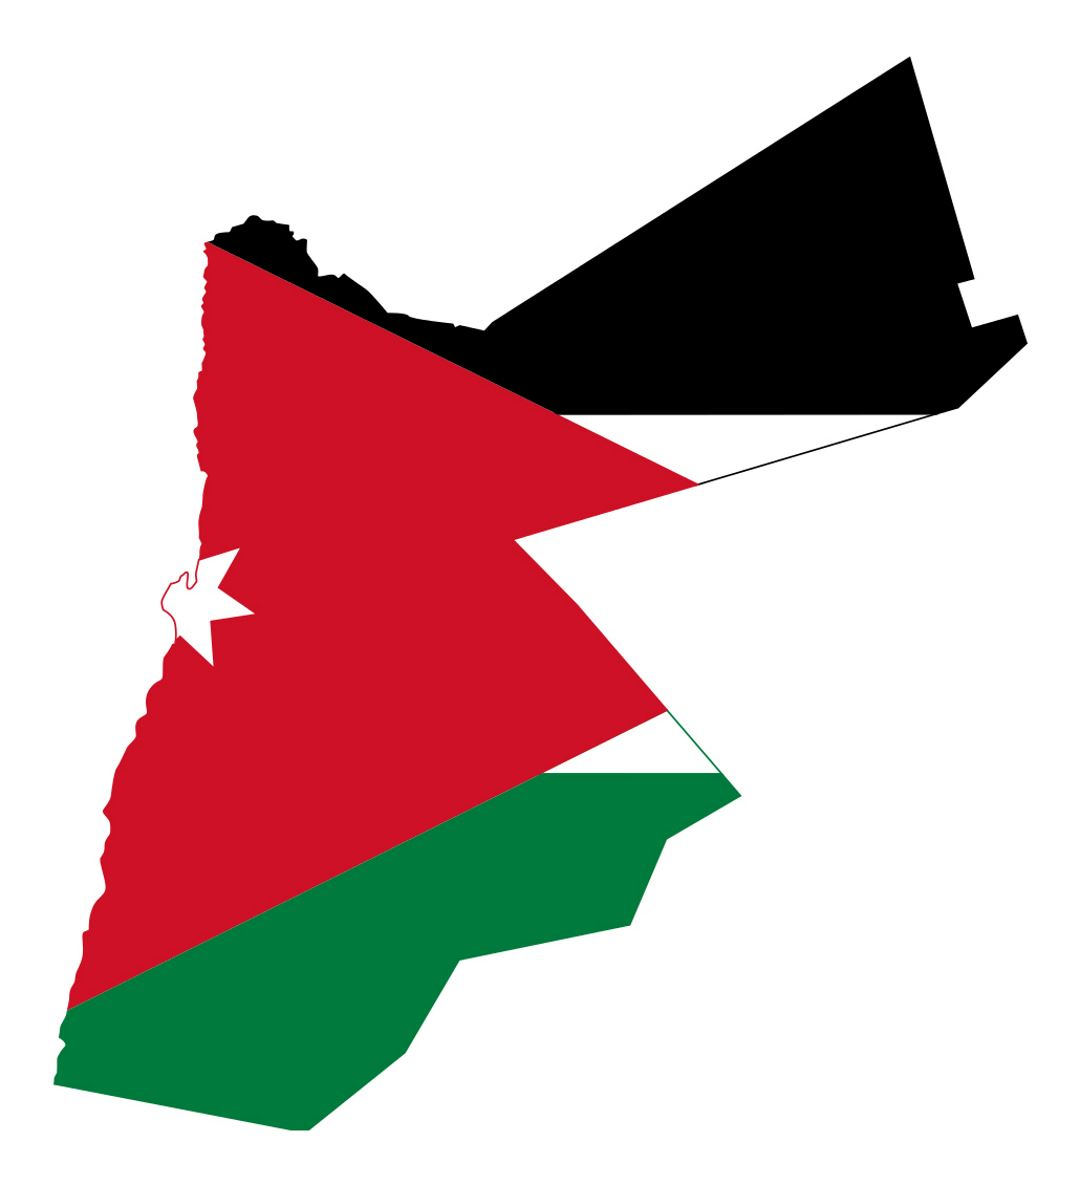 Detailed flag map of Jordan